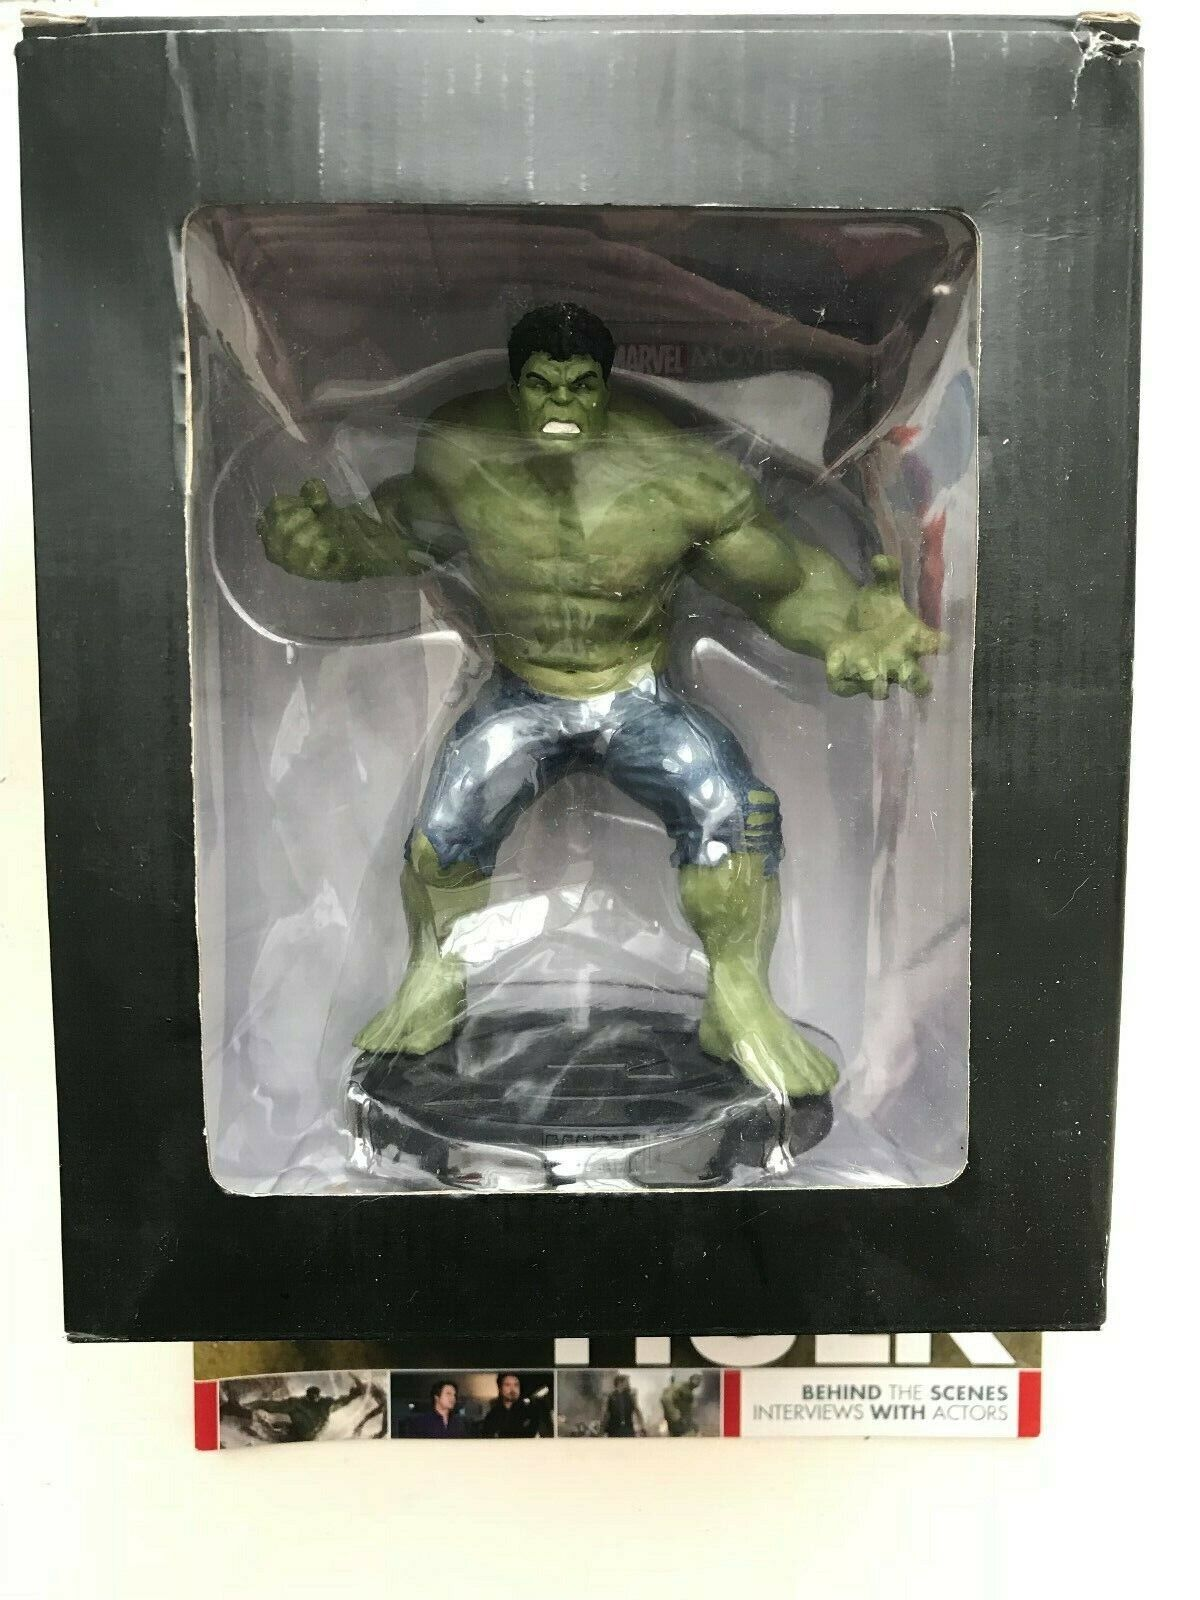 MARVEL MOVIE COLLECTION EDIZIONE specialeeE 1 HULK EAGLEMOSS STATUETTA cifra  MAG